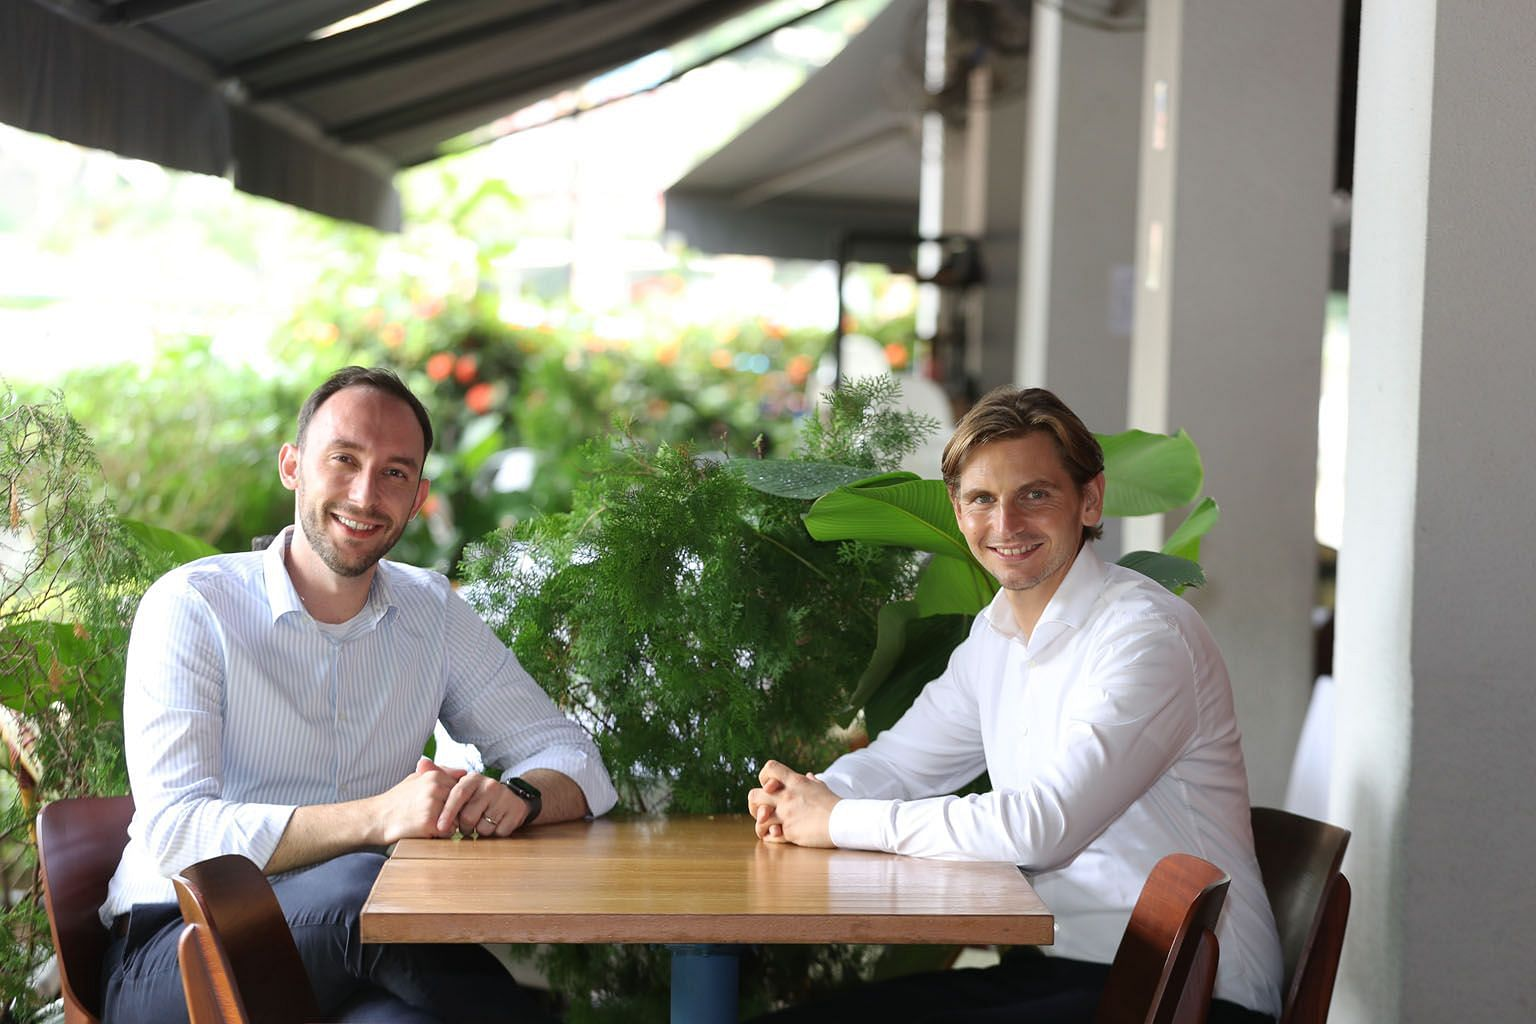 Co-founders of plant-based meat alternative firm Next Gen, Mr Andre Menezes (left) and Mr Timo Recker. Mr Menezes cited Singapore's conducive business environment, its budding agri-food ecosystem and large pool of chefs across different cuisines as r